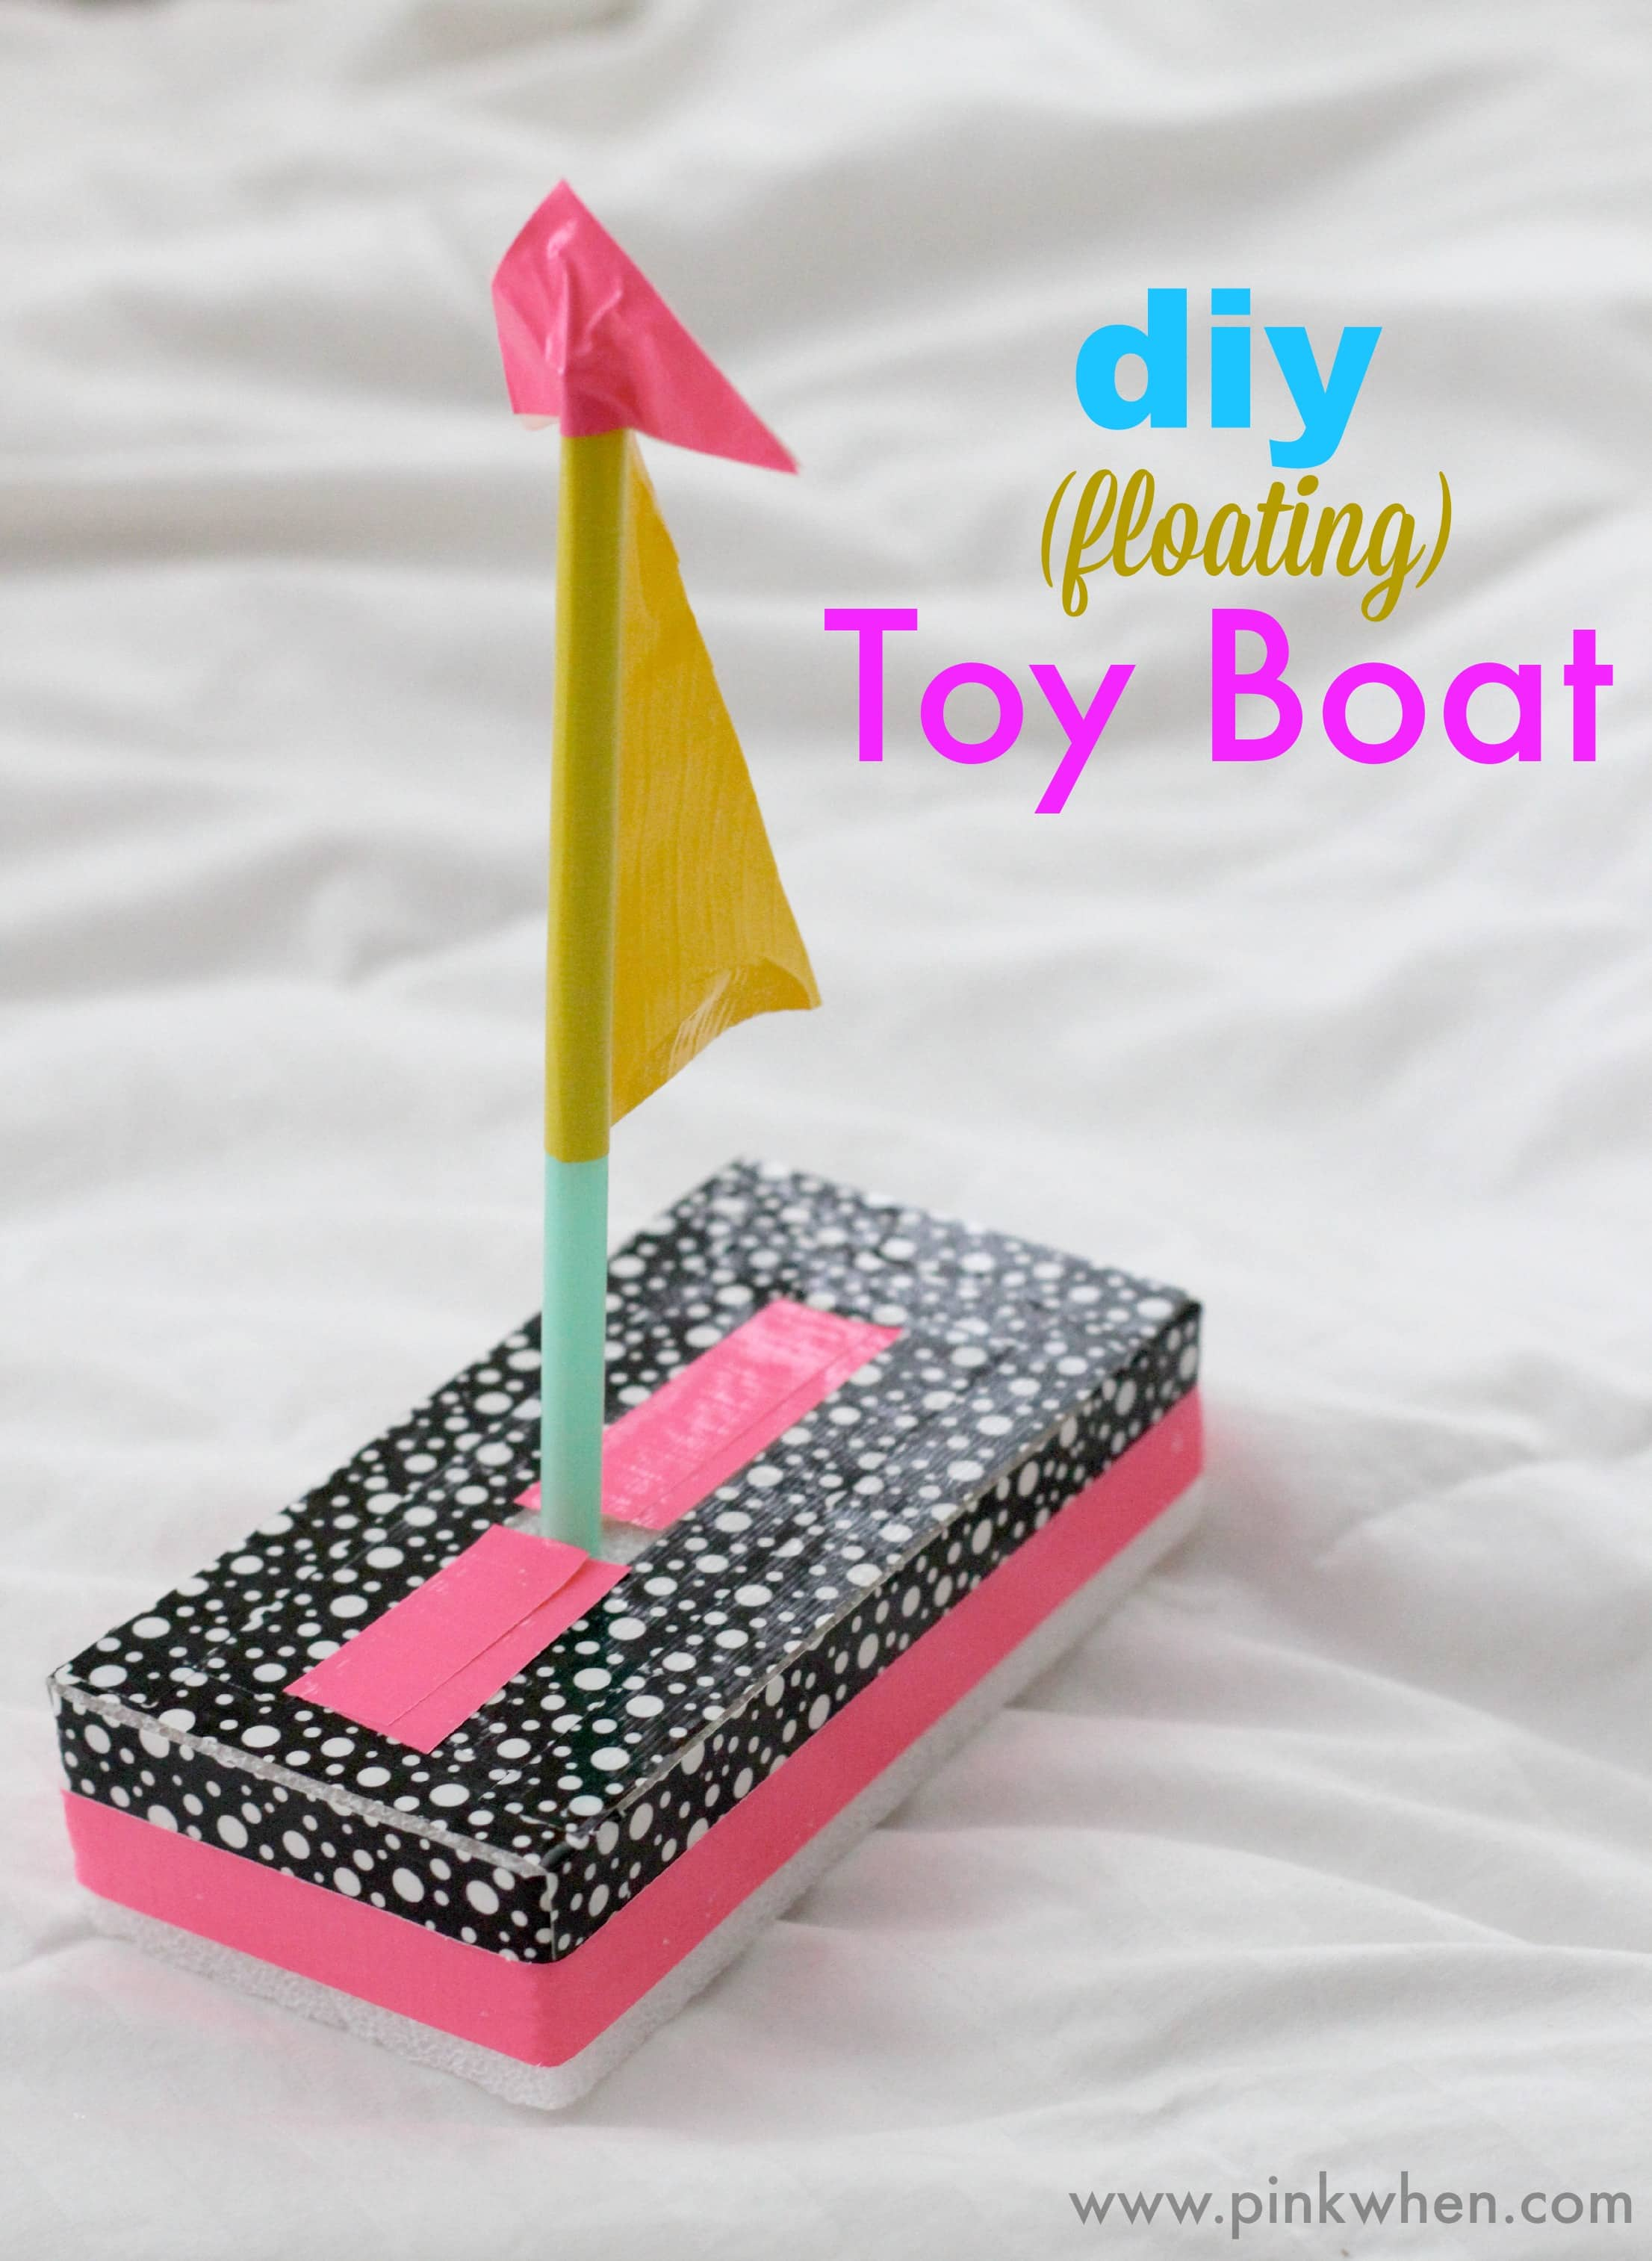 Diy toy boat quick fun crafts page 2 of 2 pinkwhen for Fun things to craft